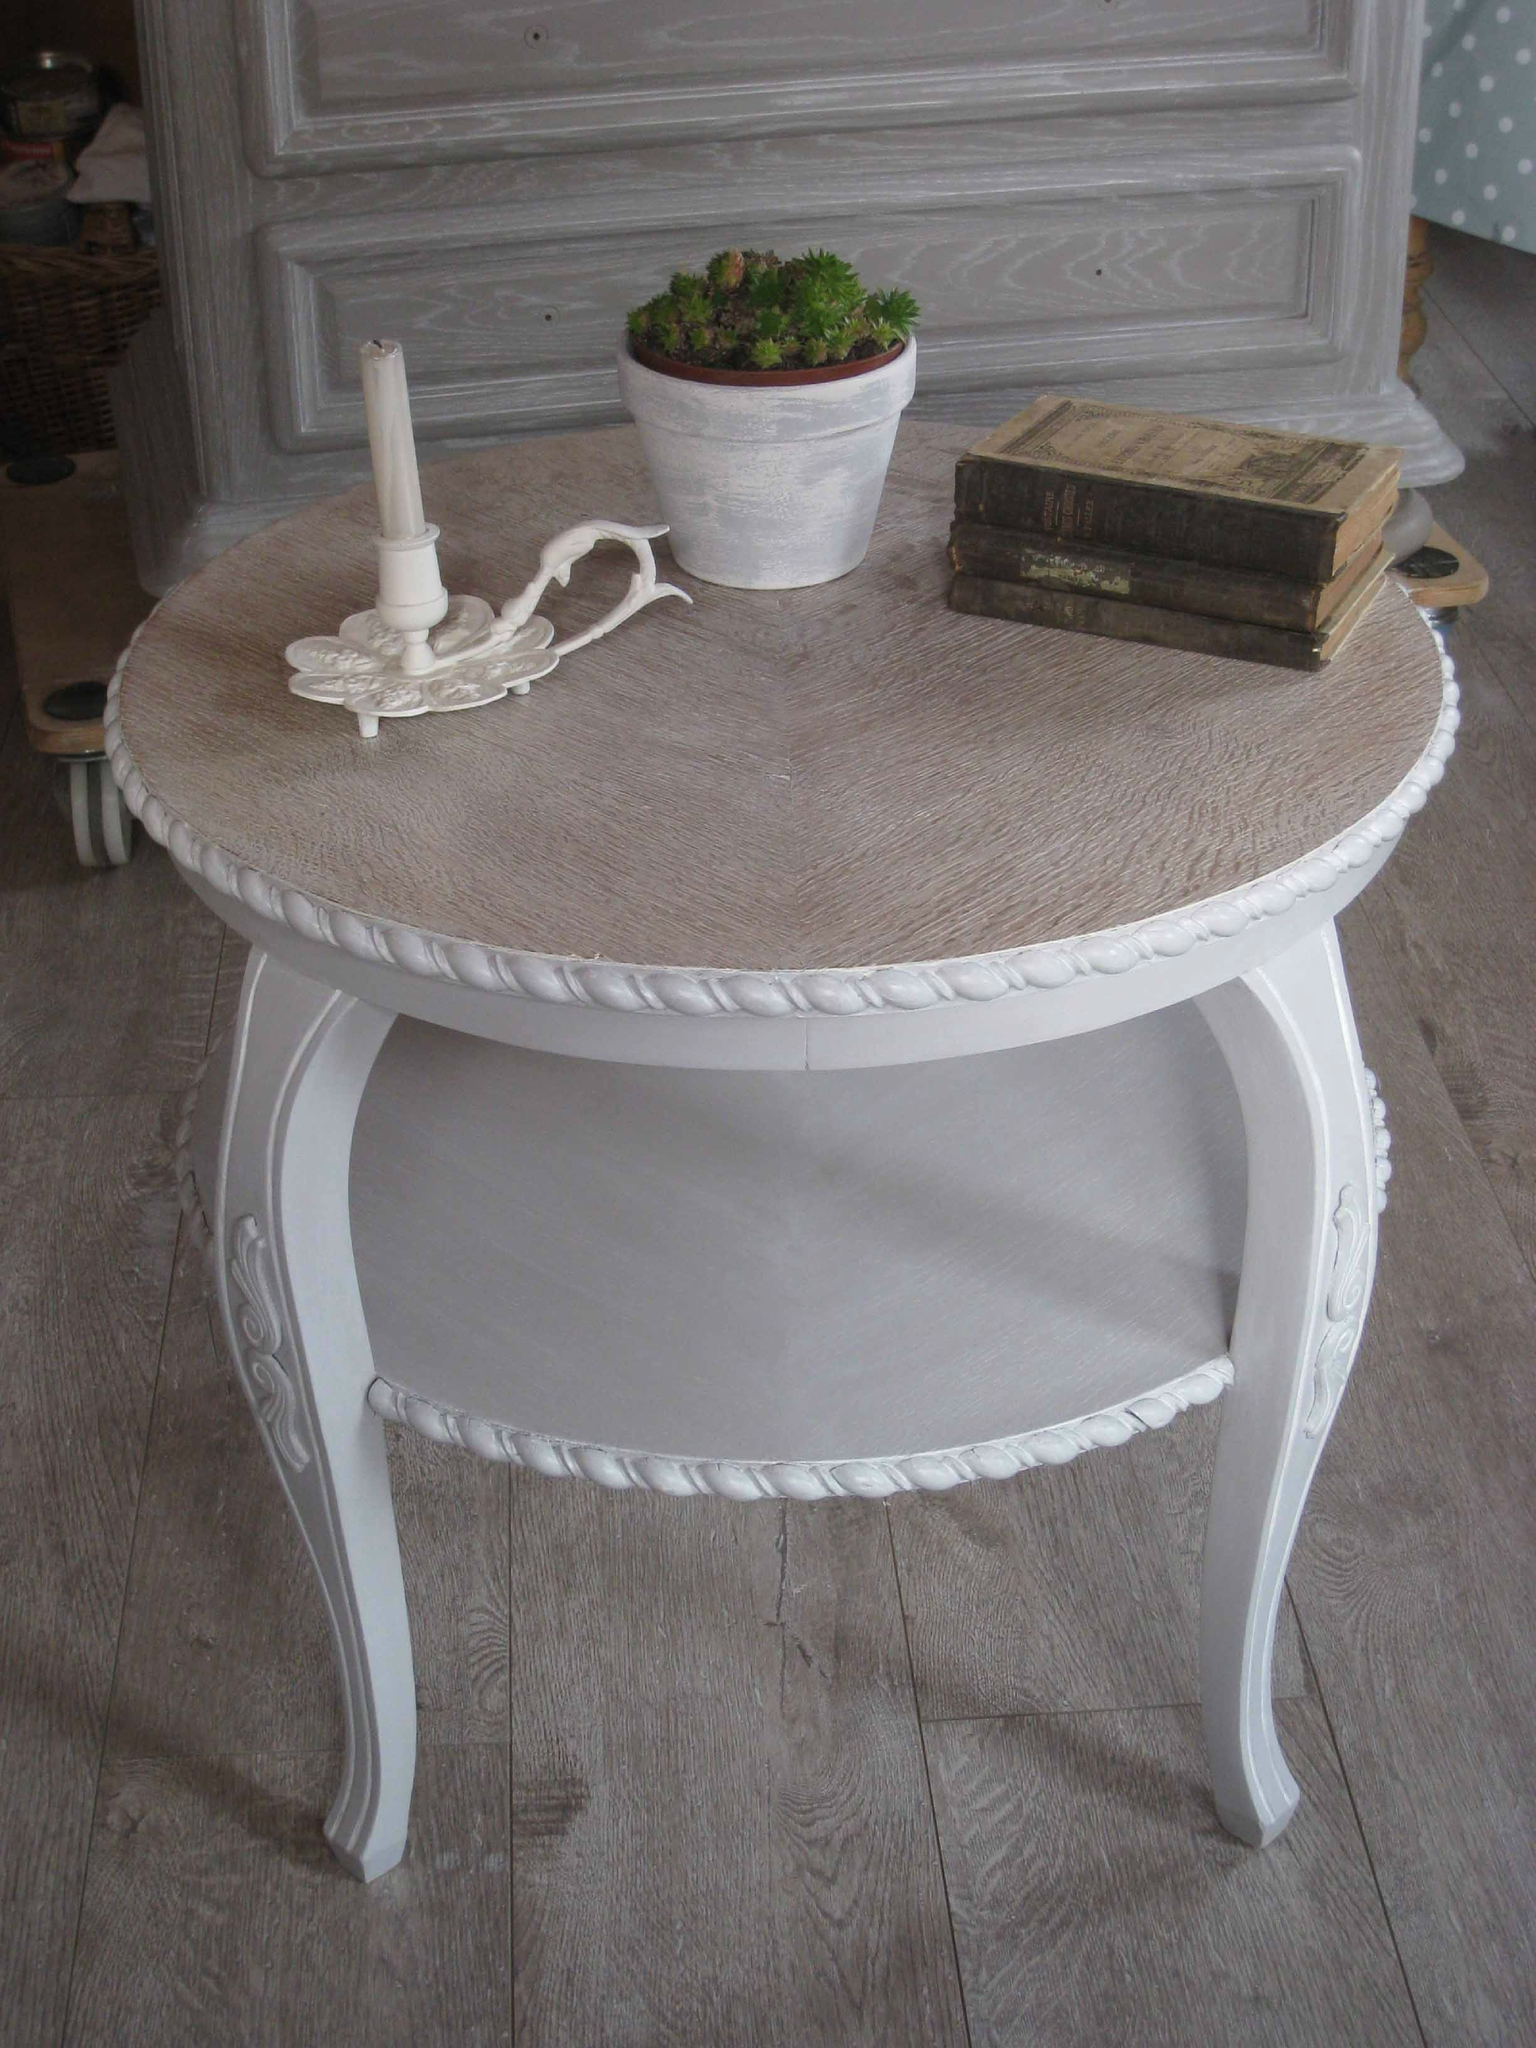 Le bon coin table de salle manger d occasion for Table de salle a manger style ancien